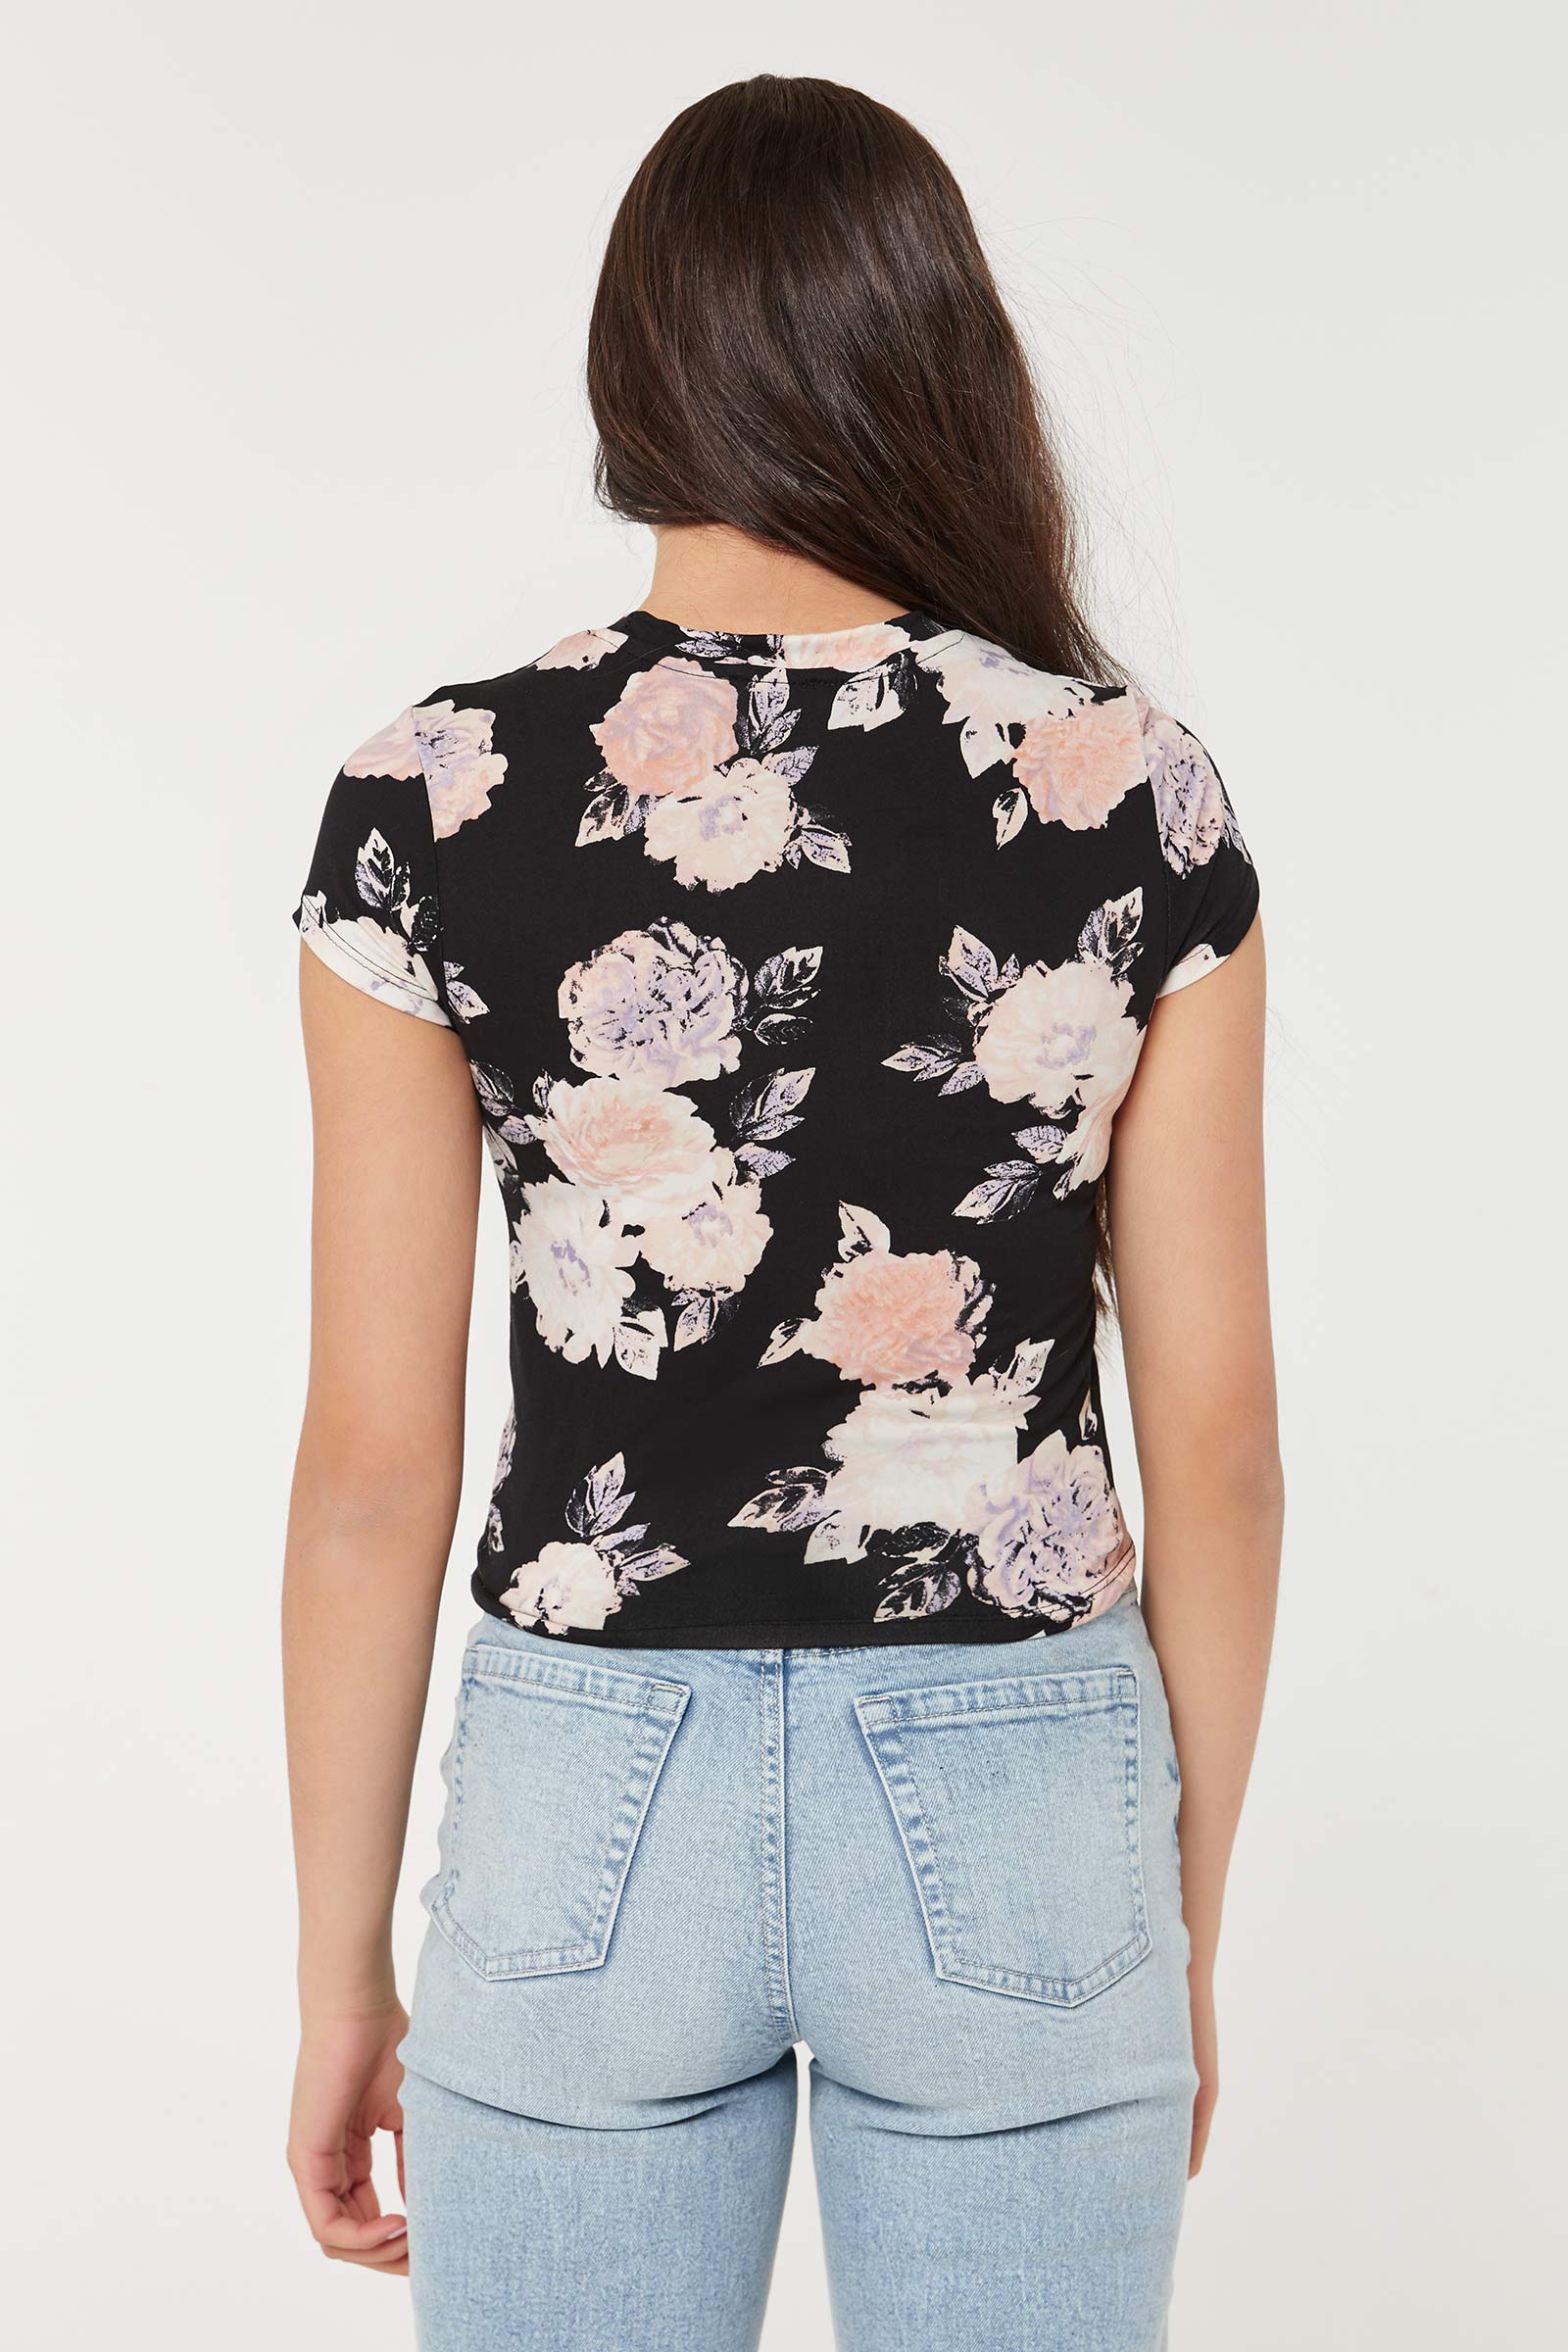 Soft Floral Tee